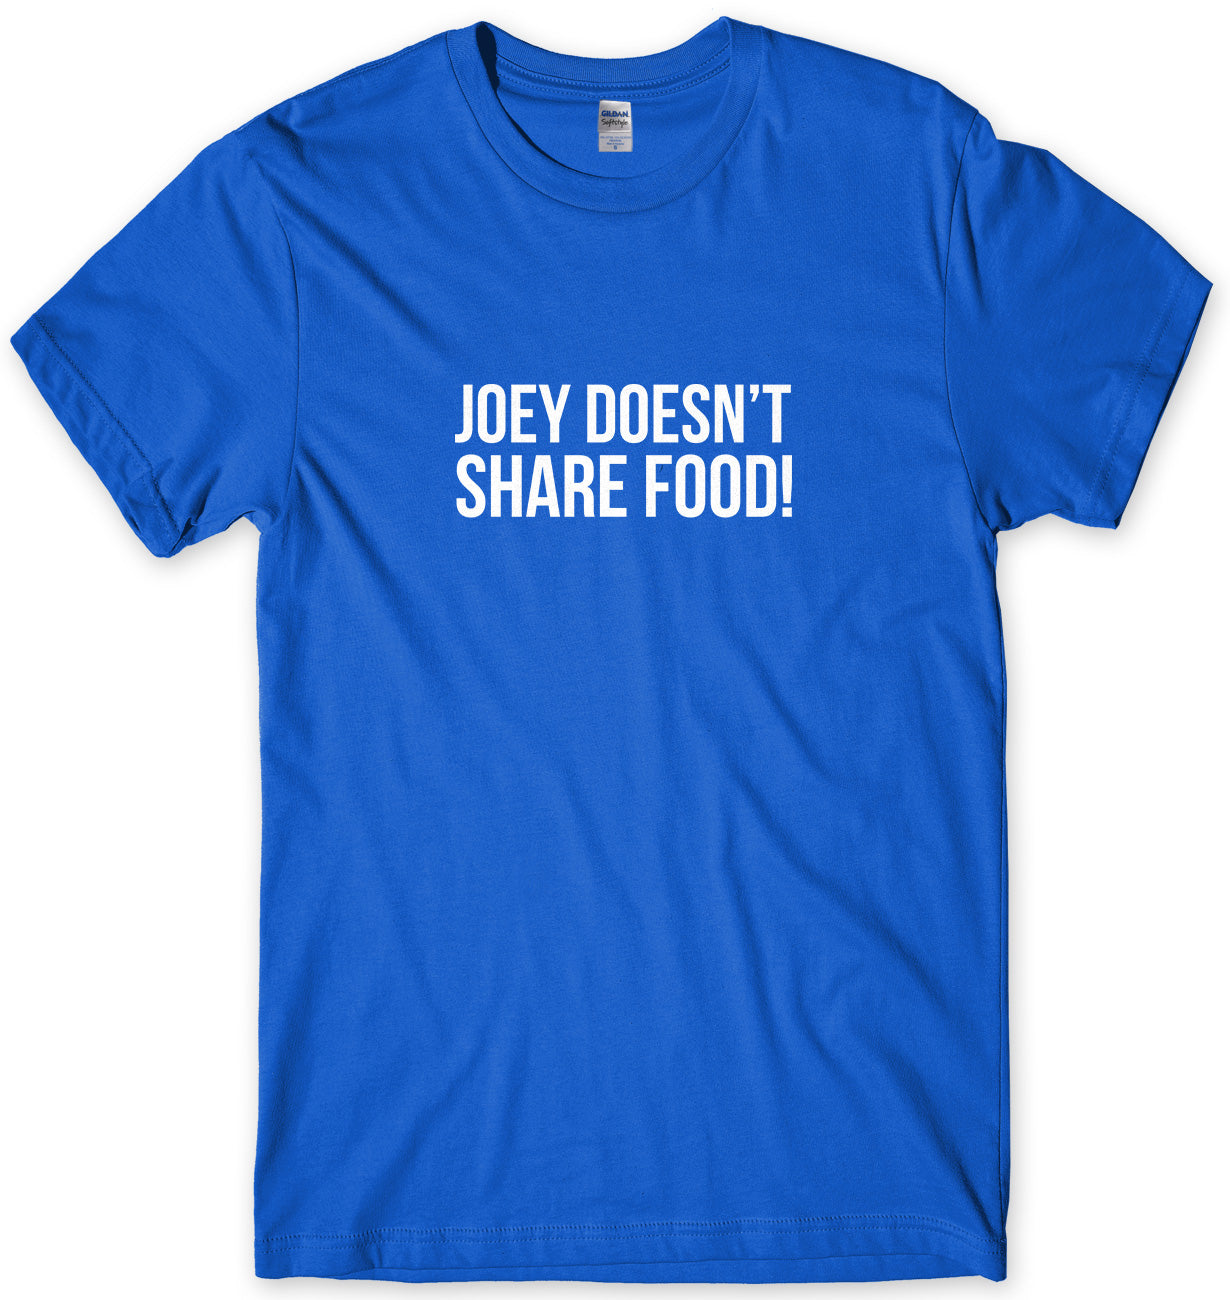 Joey Doesn't Share Food Mens Unisex T-Shirt